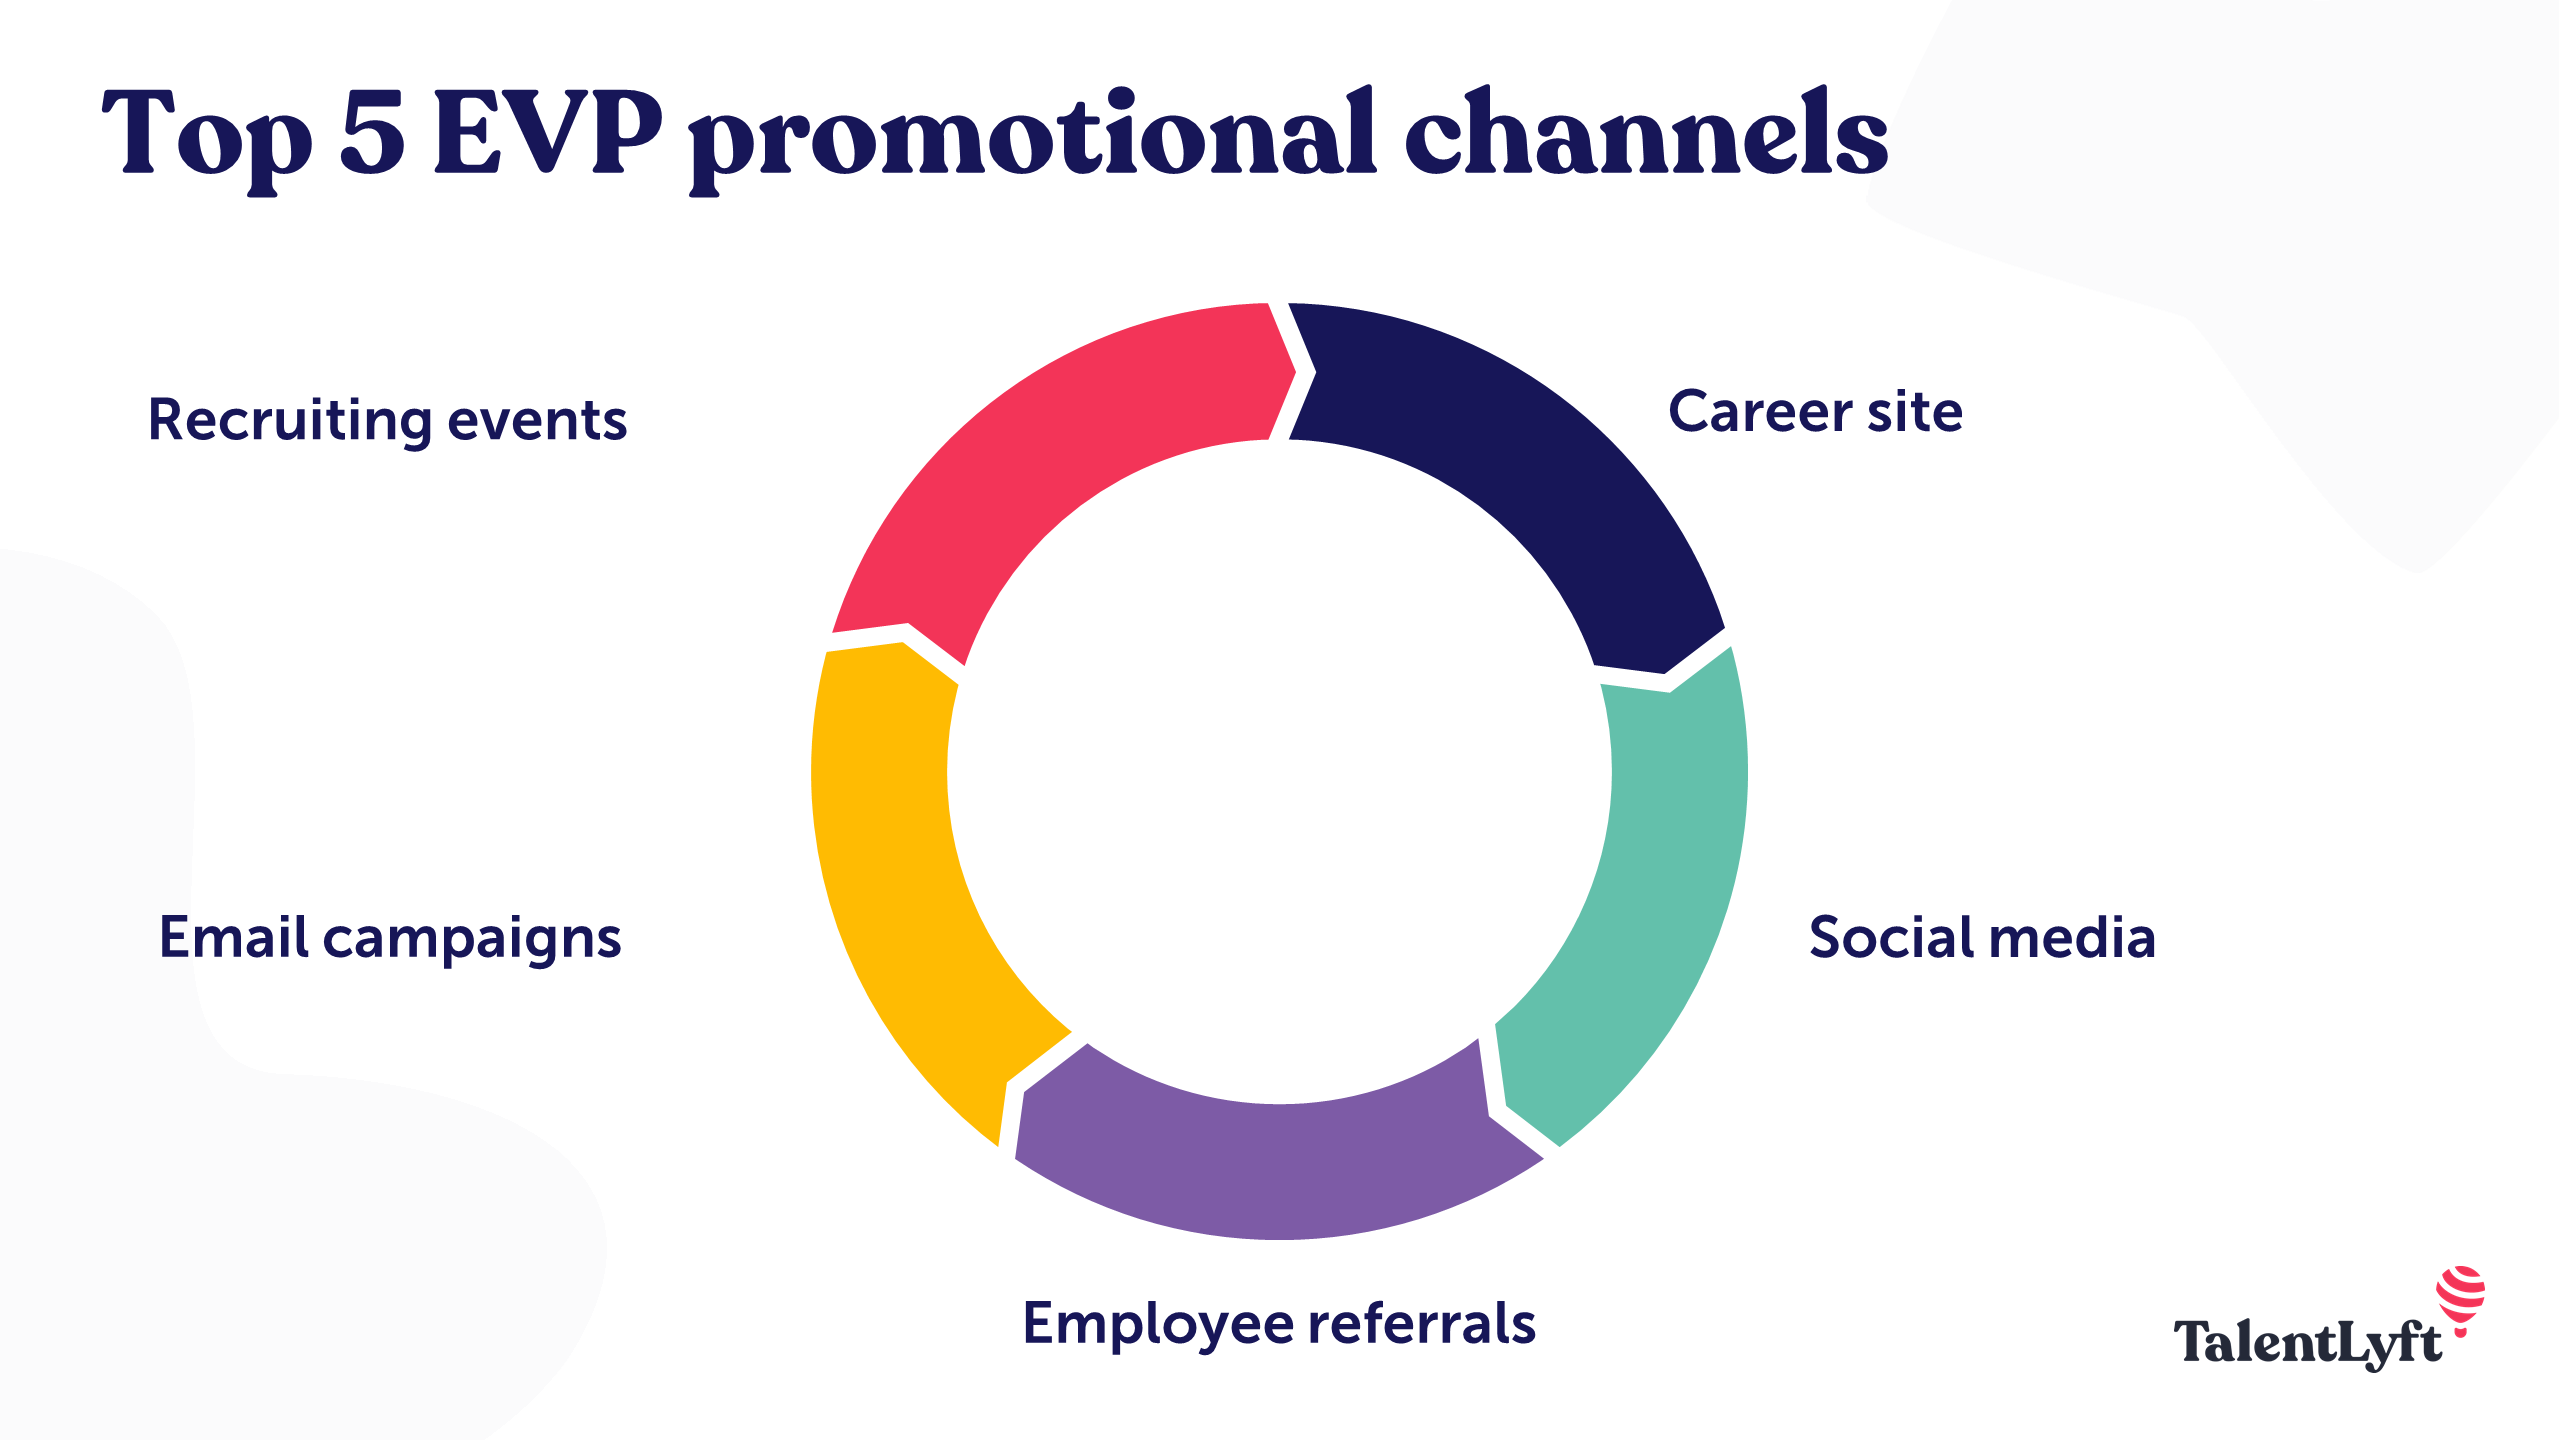 Channels for promoting EVP